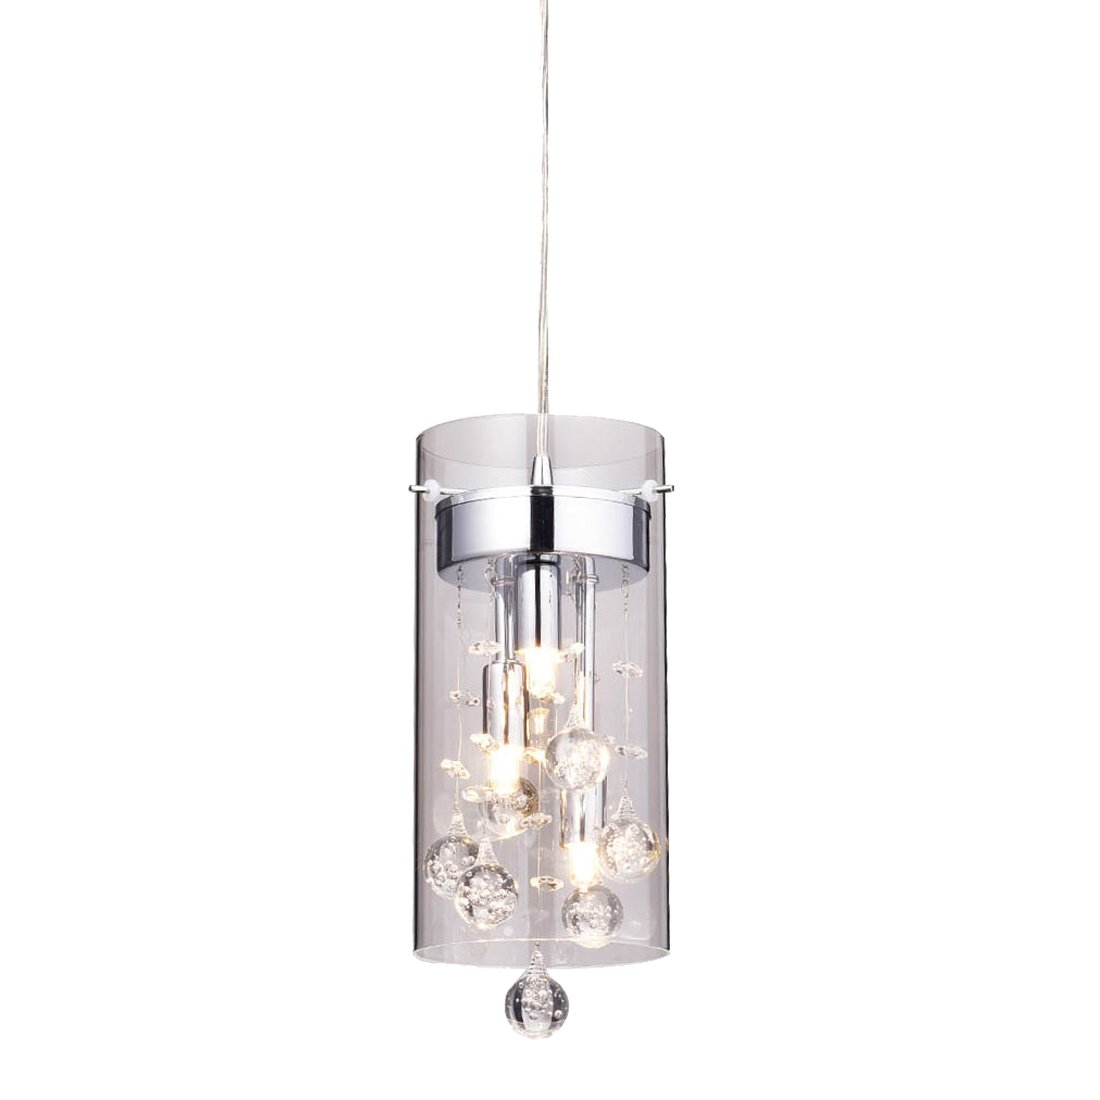 Truelite Modern G9 Glass Pendant Crystal Hanging Light Fixture by AXILAND